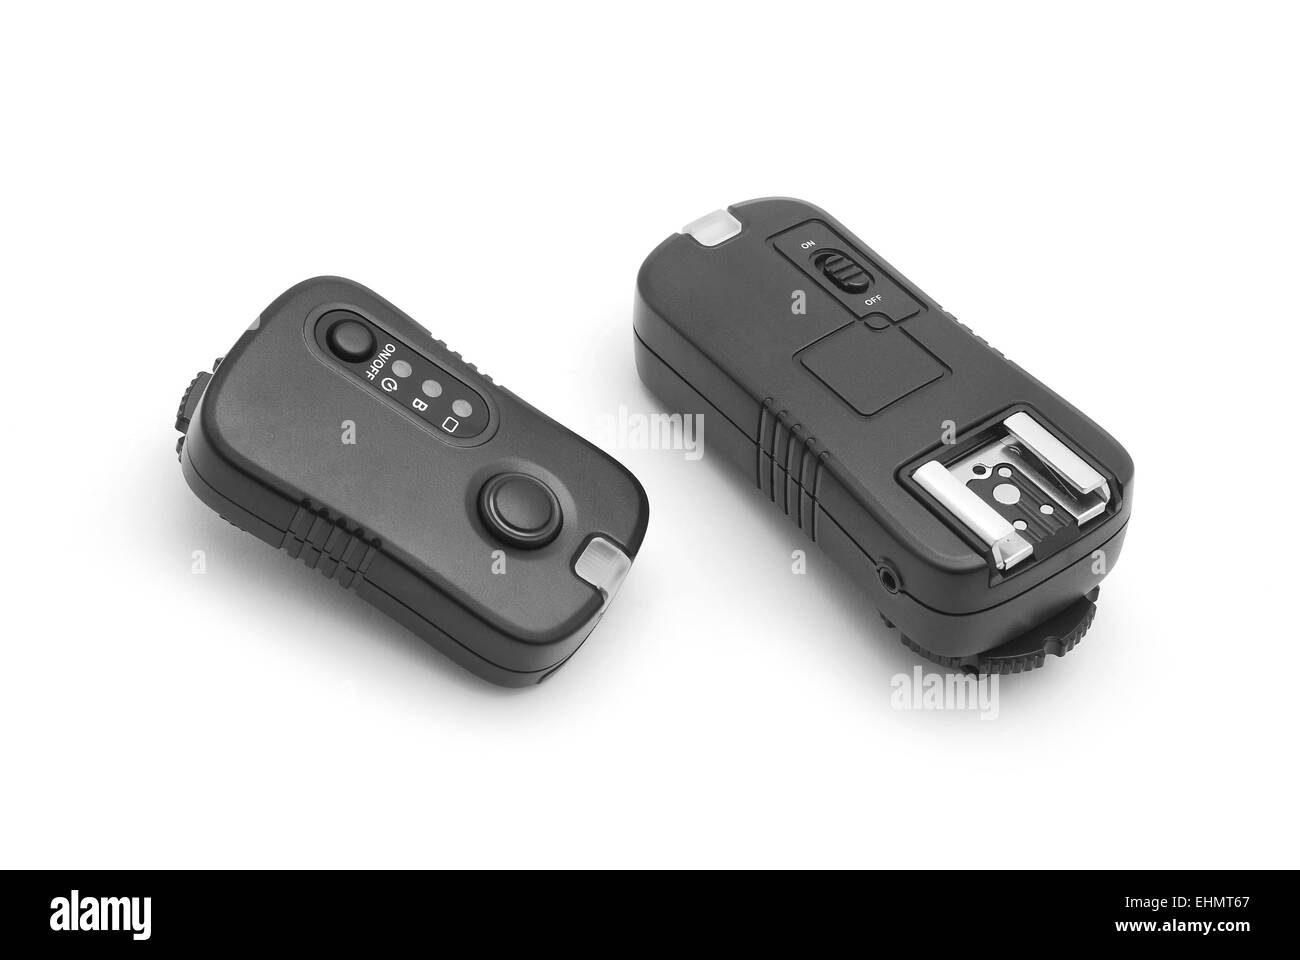 wireless flash trigger and transmitter - Stock Image